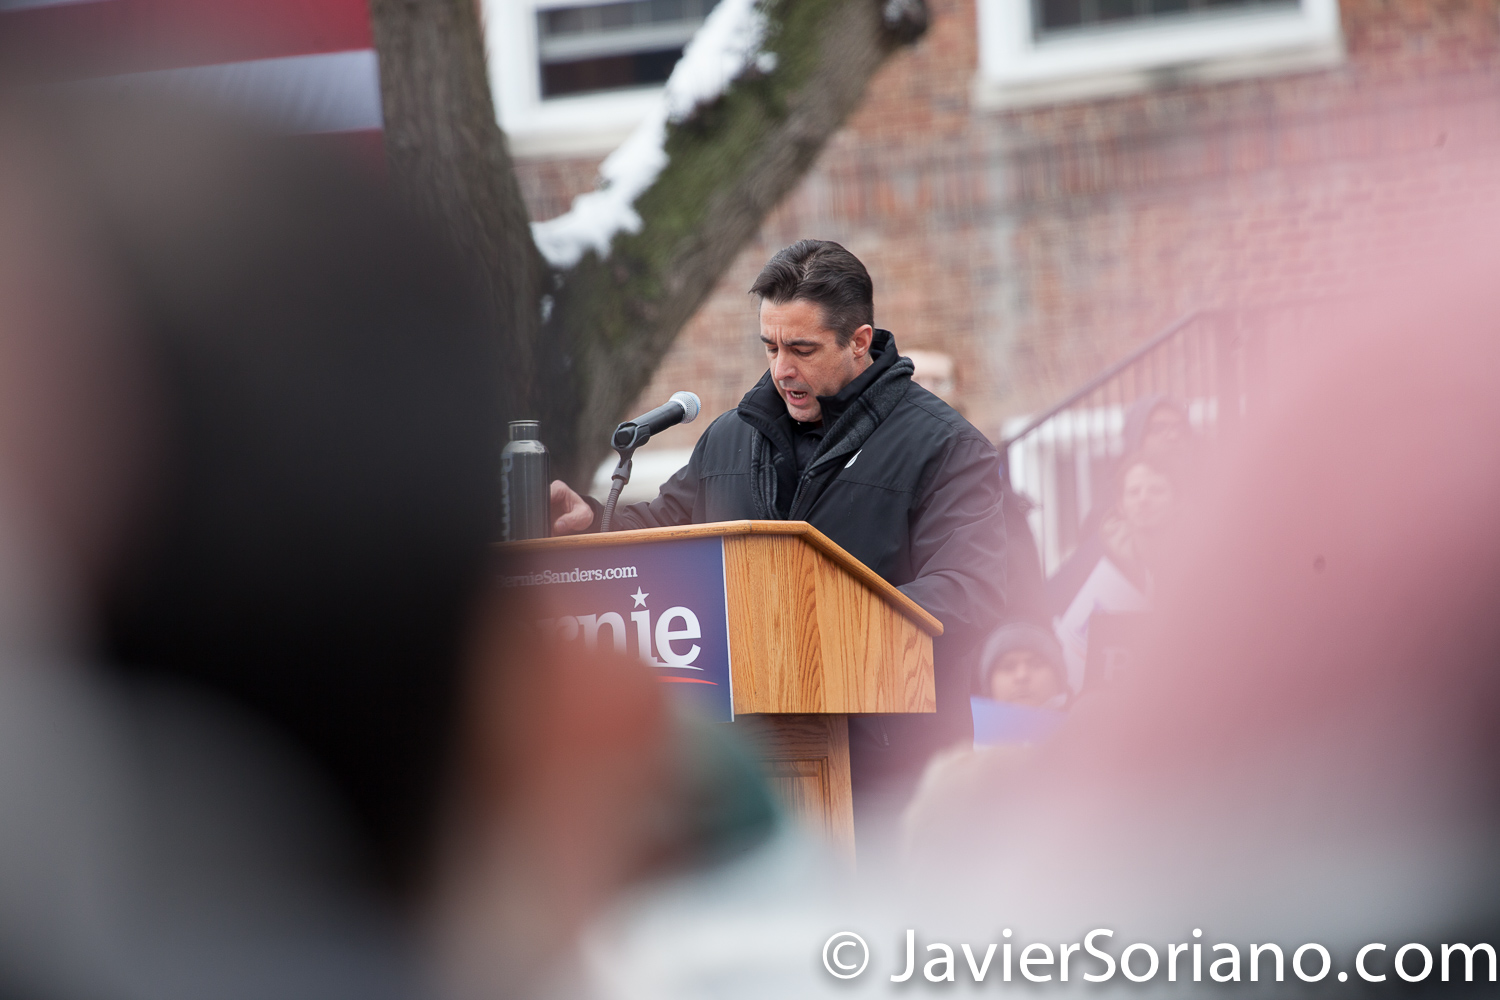 Saturday, March 2, 2019. Brooklyn College. Brooklyn, New York City. UE Local 506 President Scott Slawson speaks to the more than 10 thousand supporters of U.S. Senator and presidential candidate Bernie Sanders. This was the first event of his 2020 presidential campaign. Although it was cold, people were happy to be there. Photo by Javier Soriano/www.JavierSoriano.com